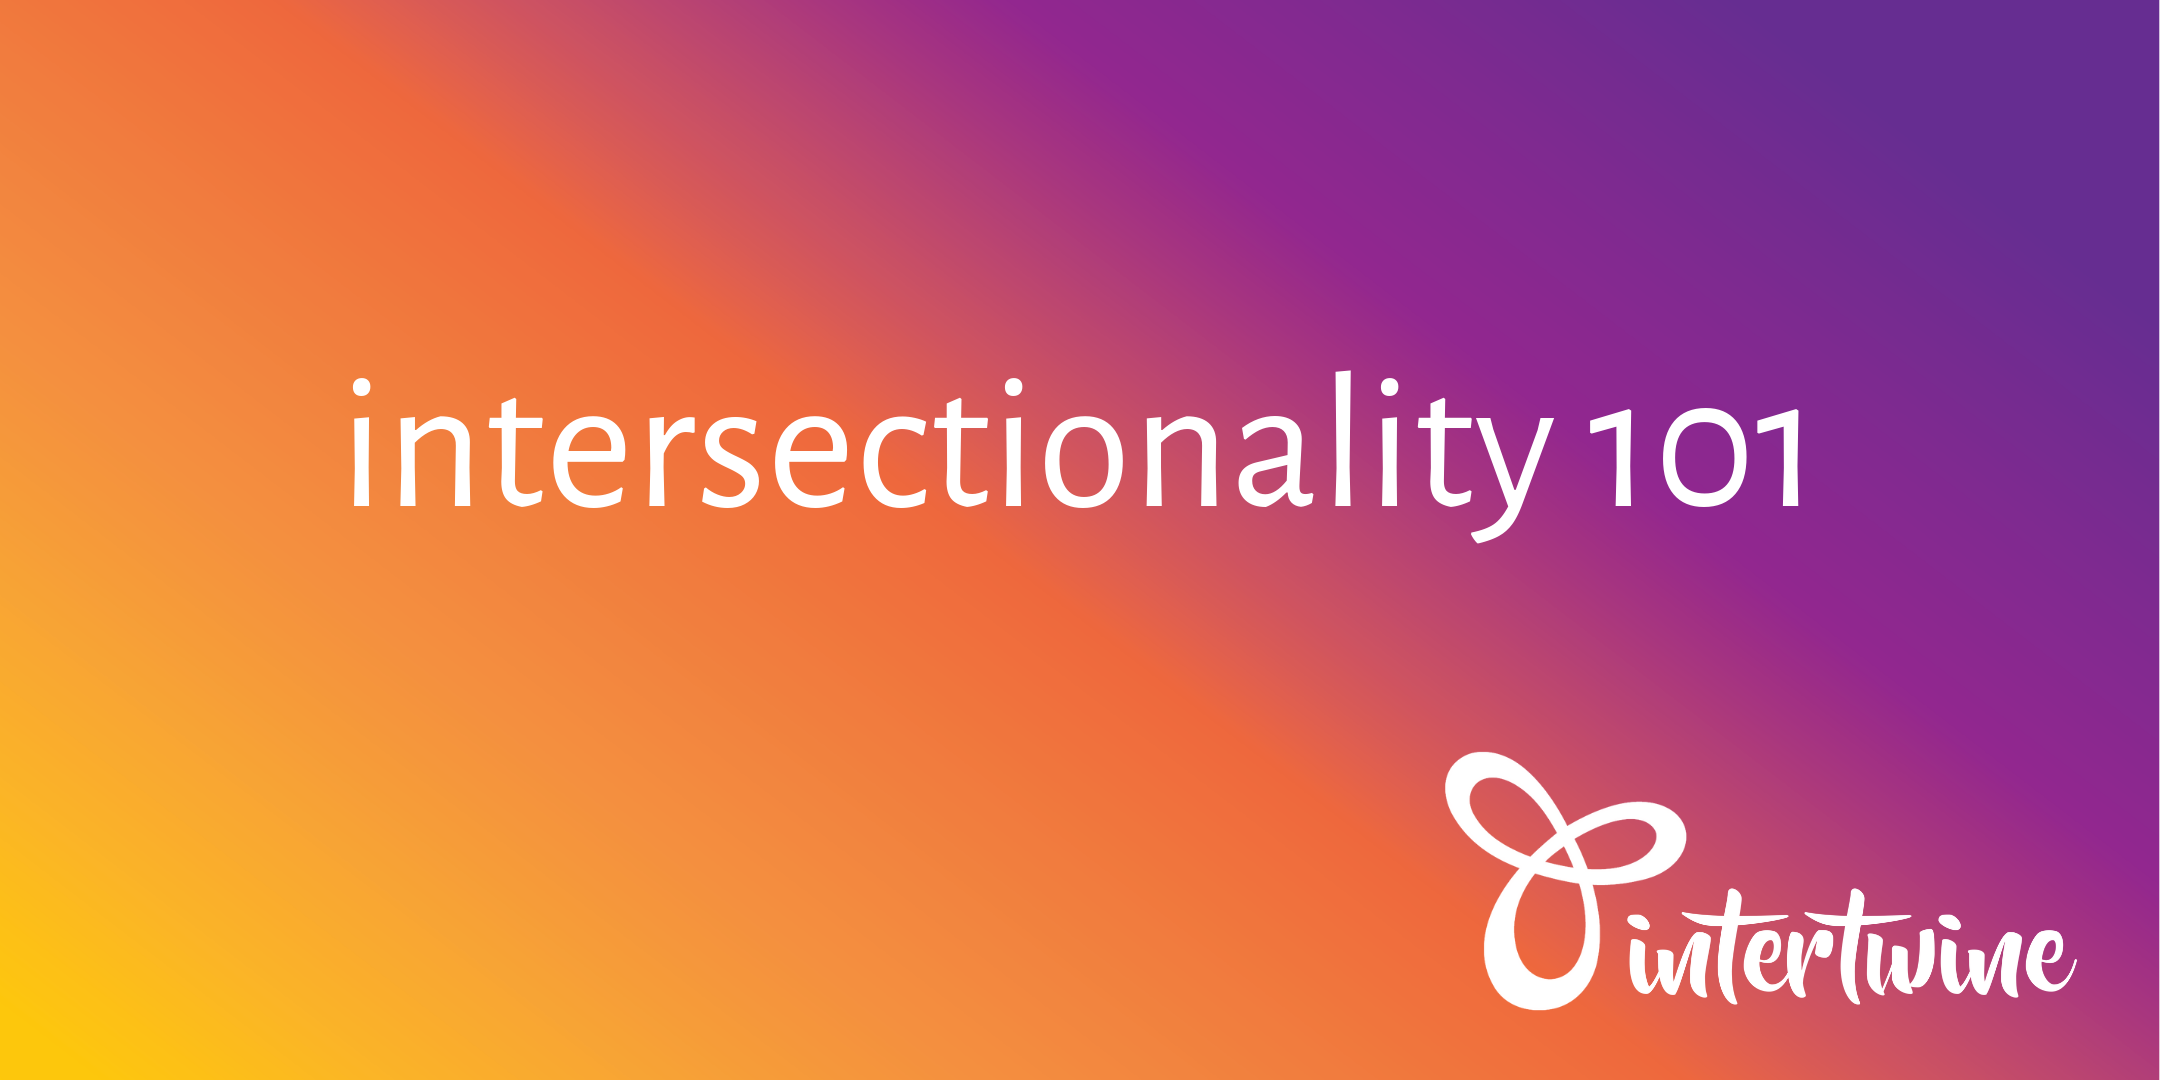 Intersectionality 101